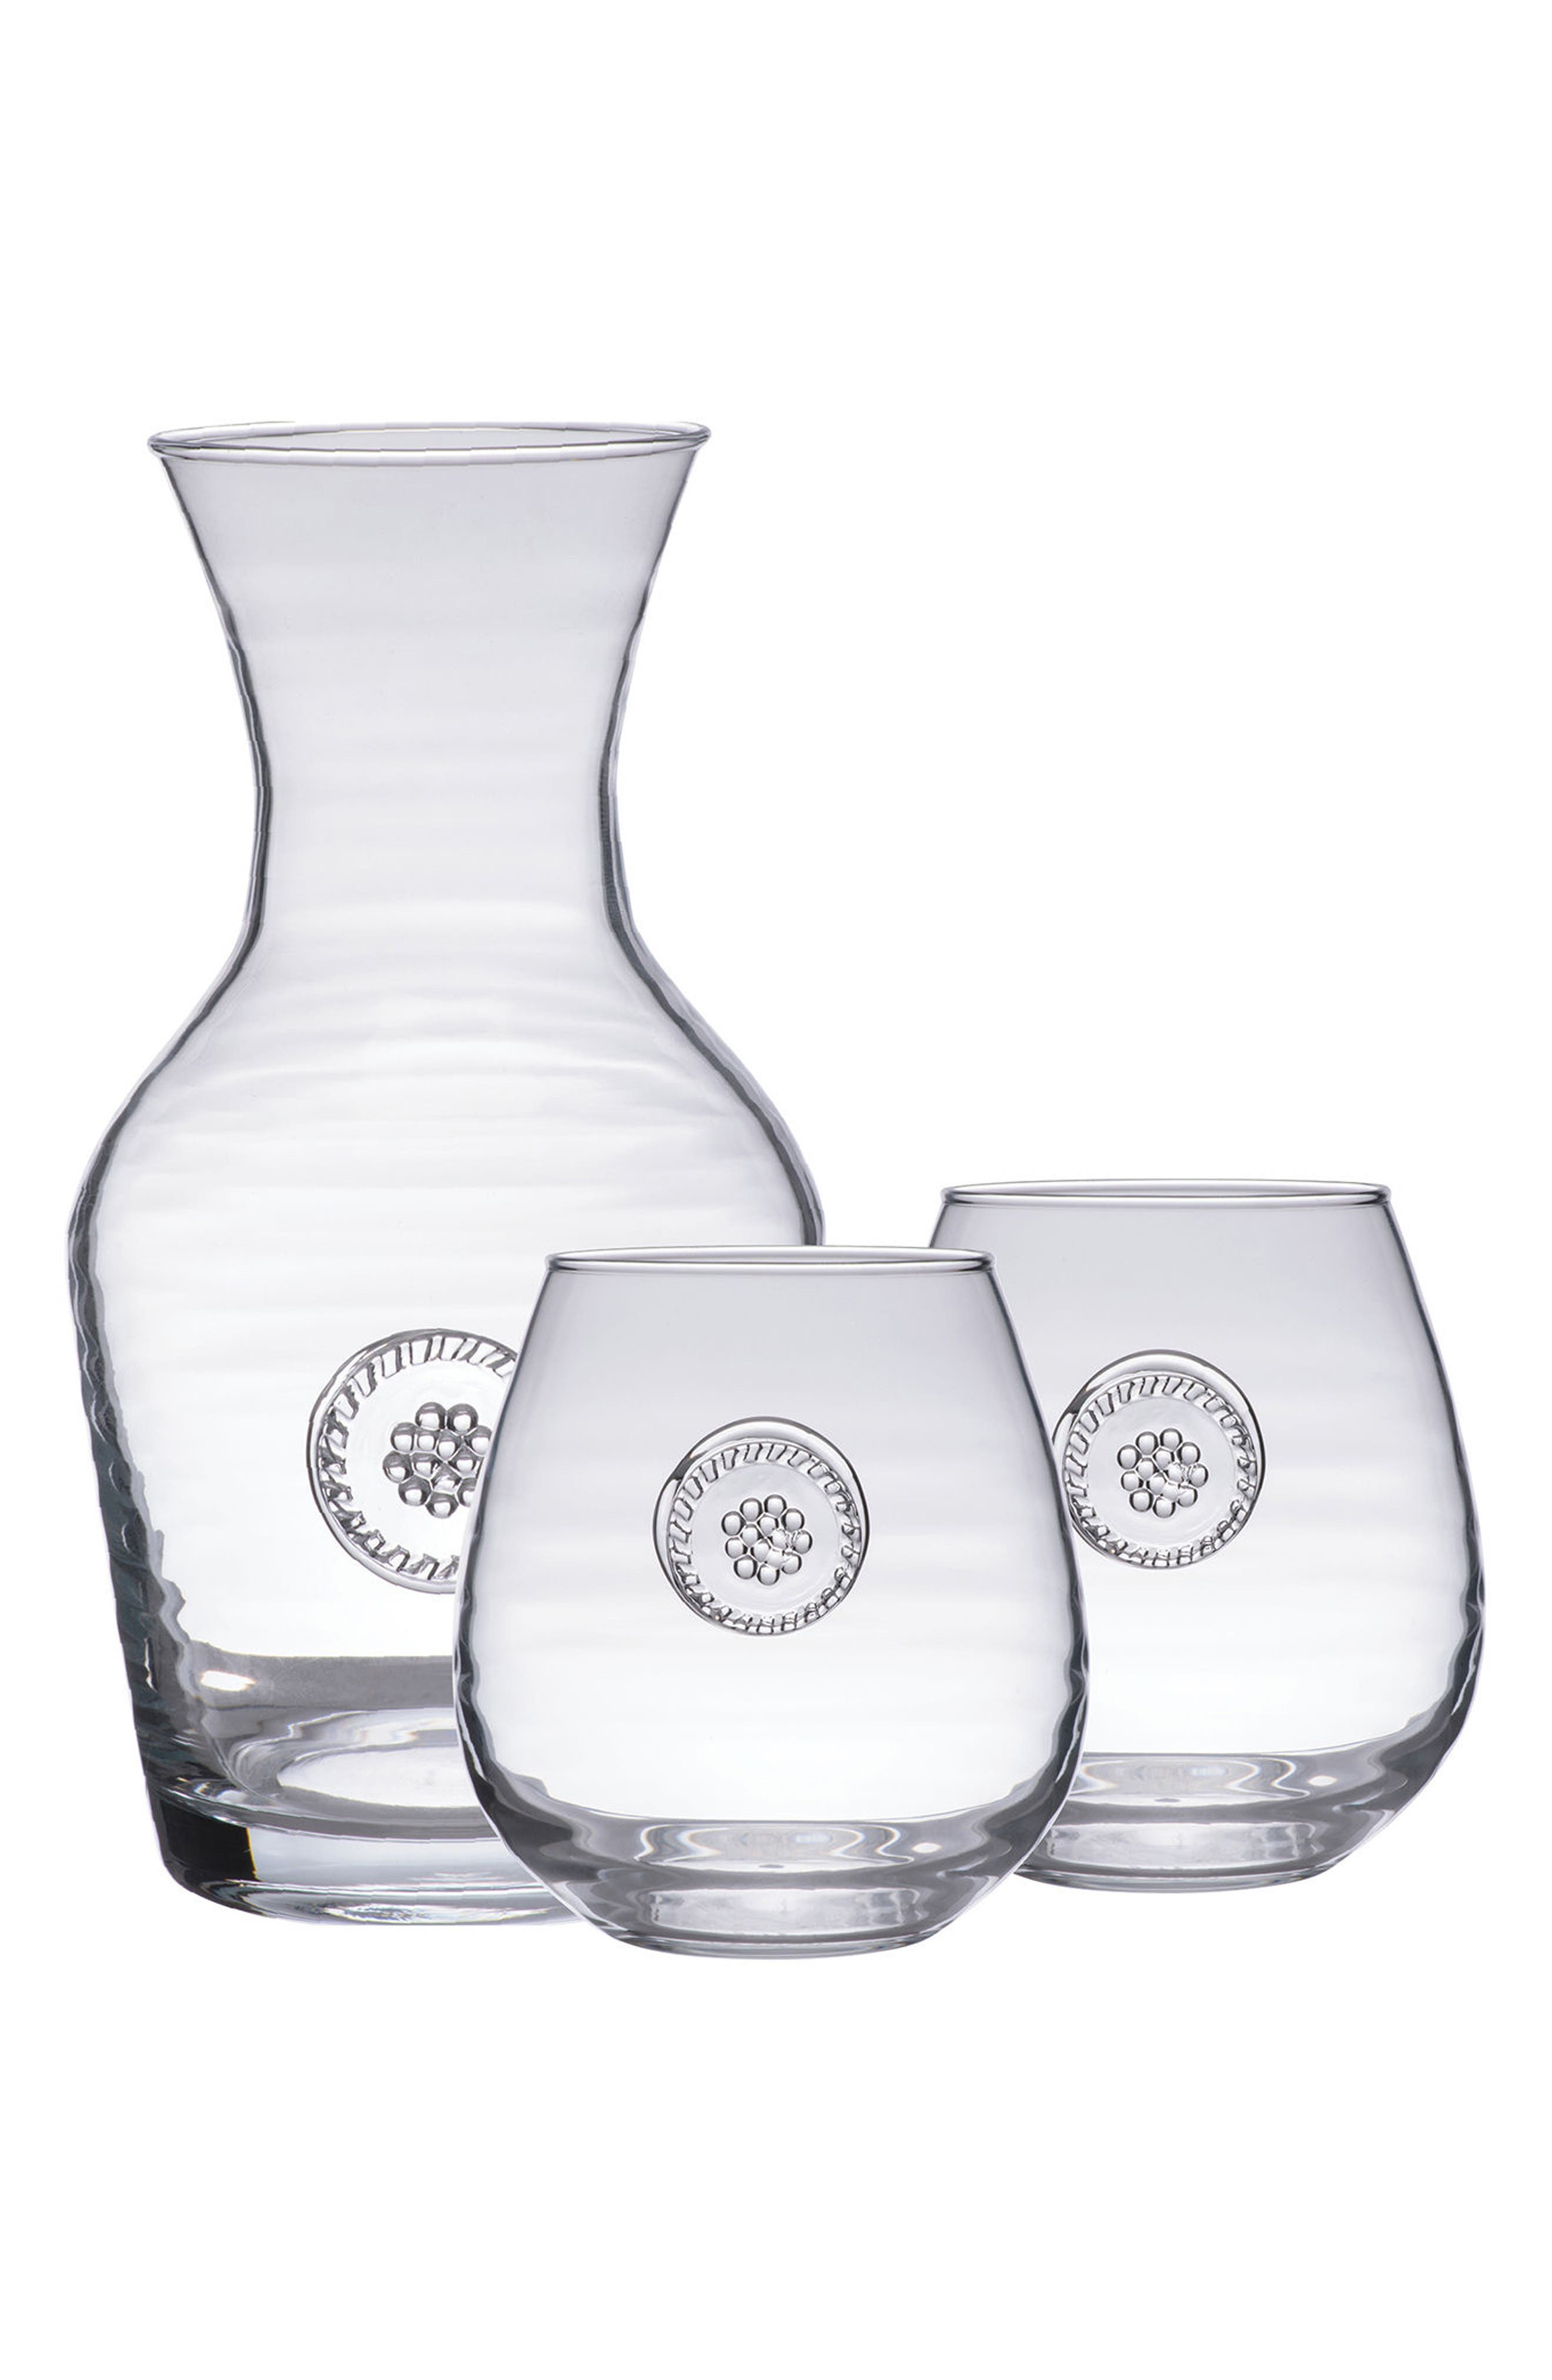 'Berry and Thread' Carafe & StemlessRed WineGlasses,                             Main thumbnail 1, color,                             100